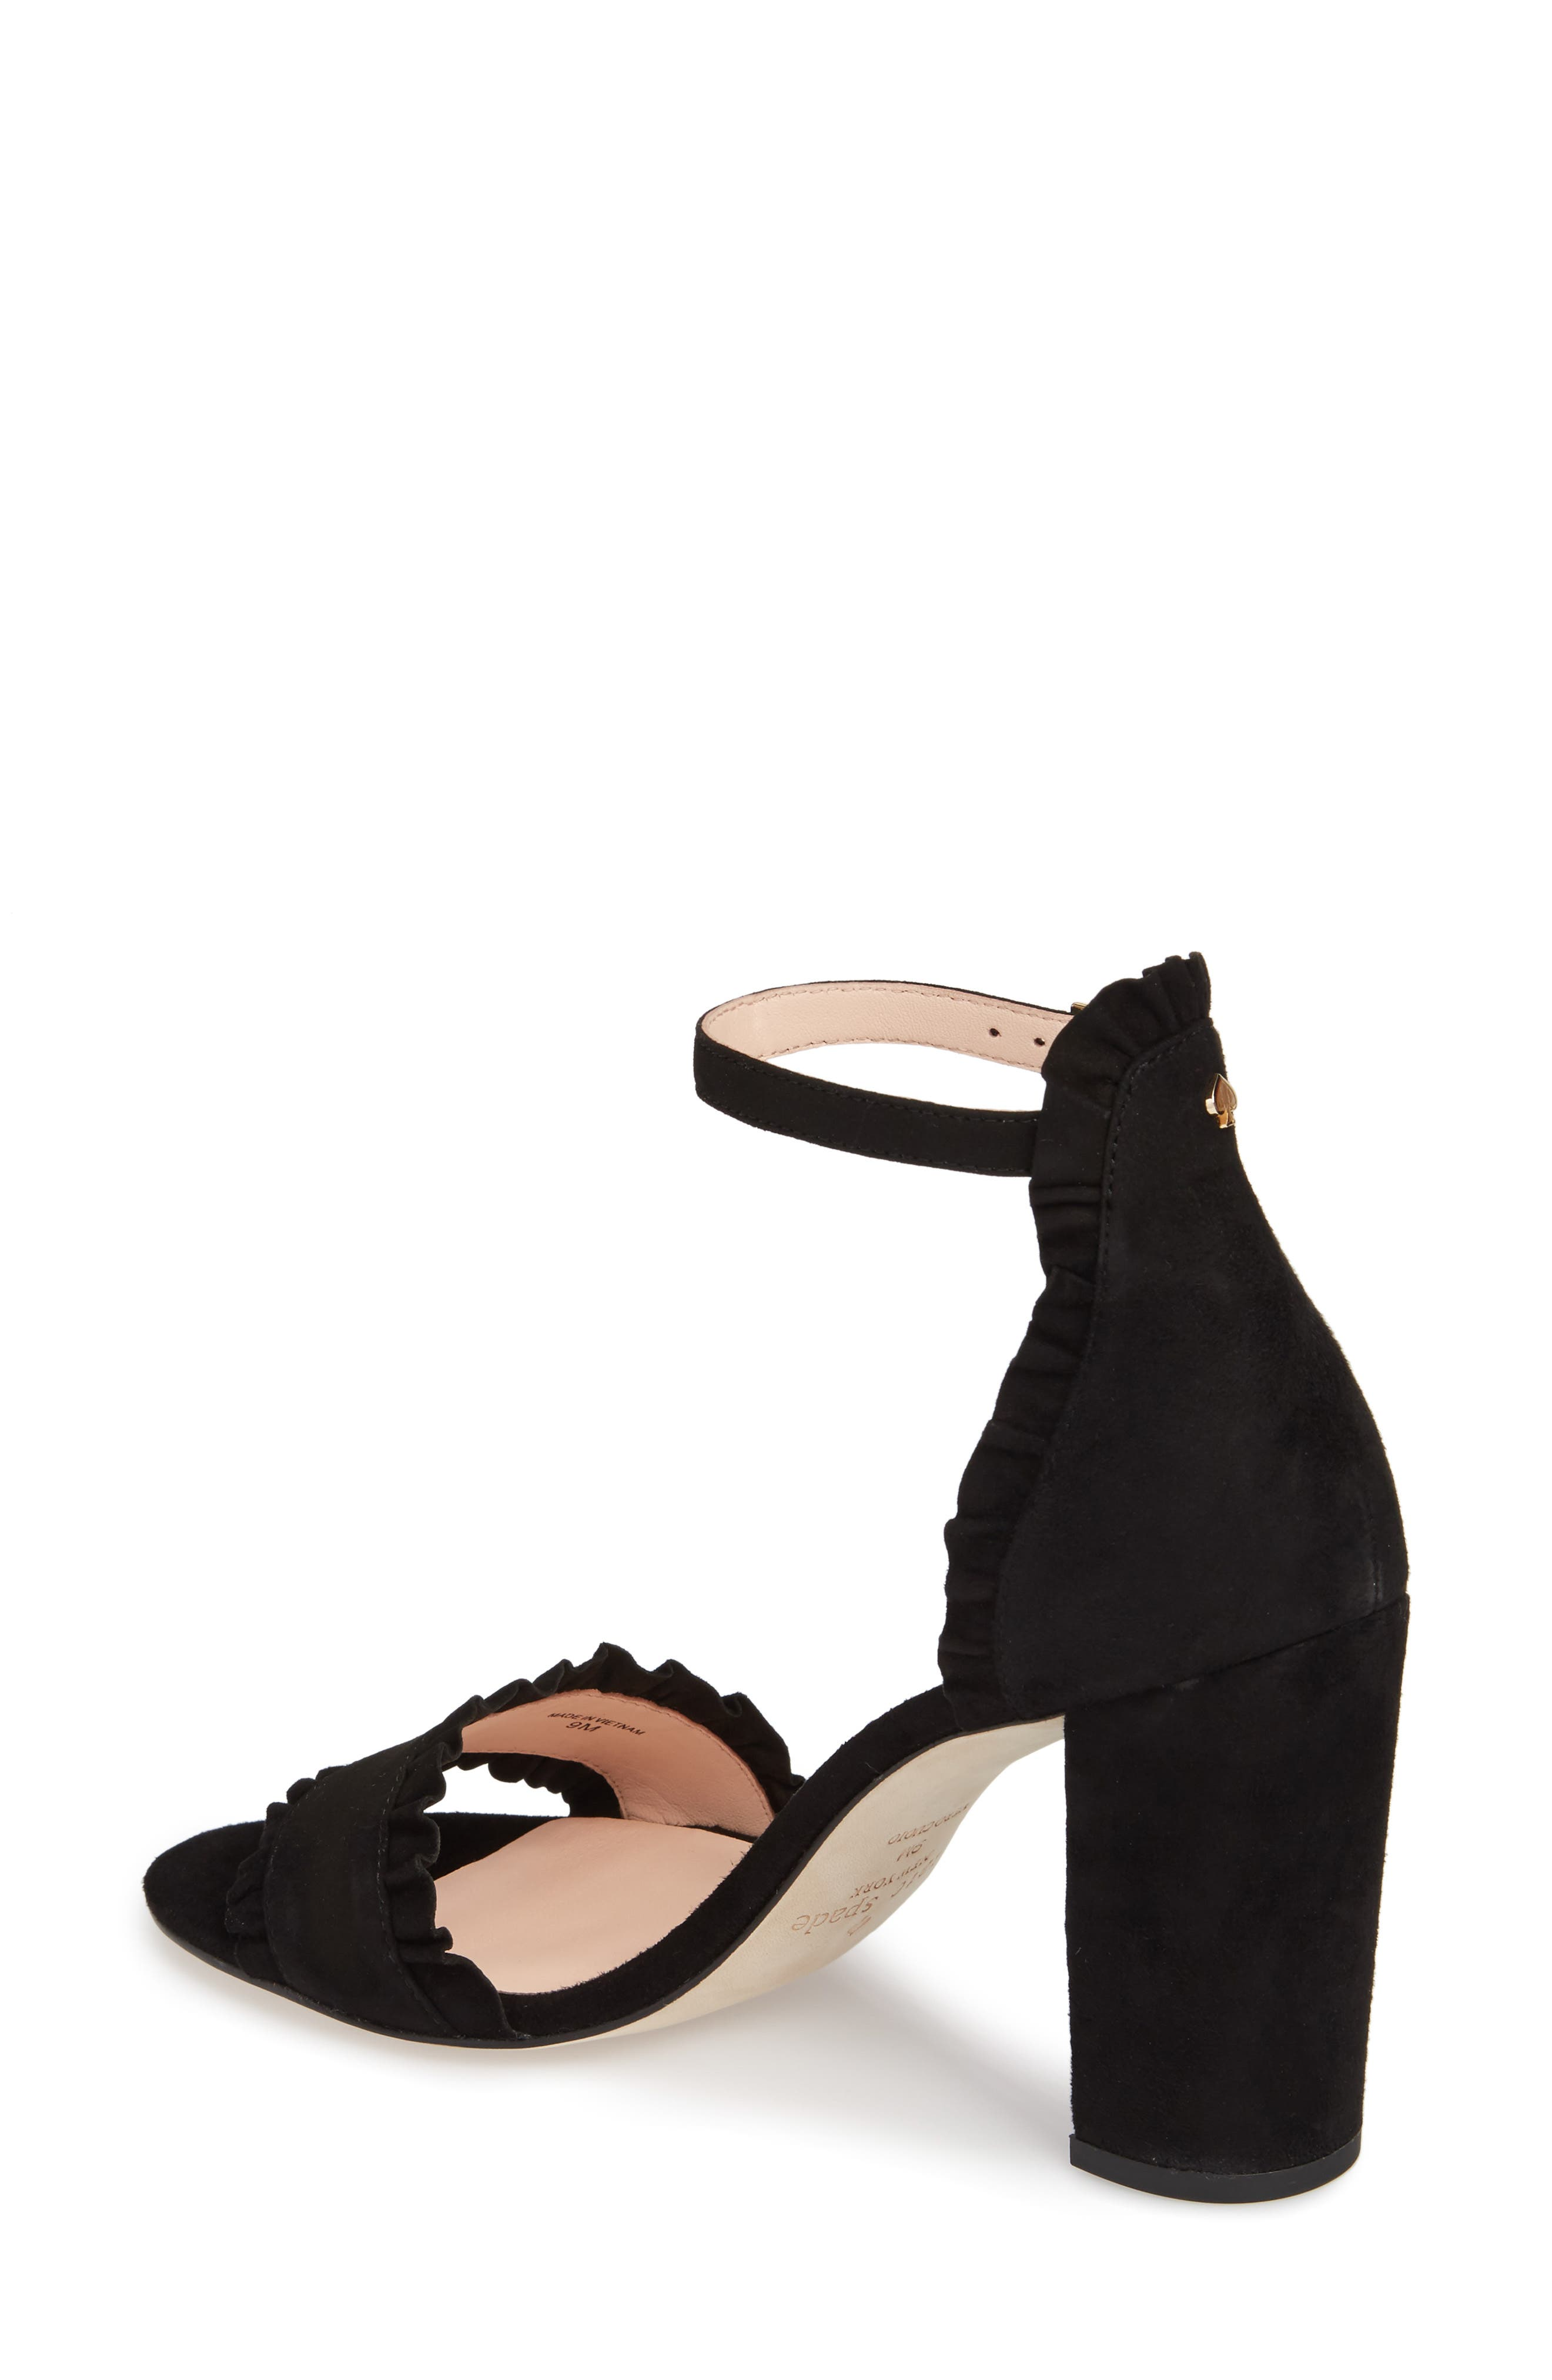 odele ruffle sandal,                             Alternate thumbnail 3, color,